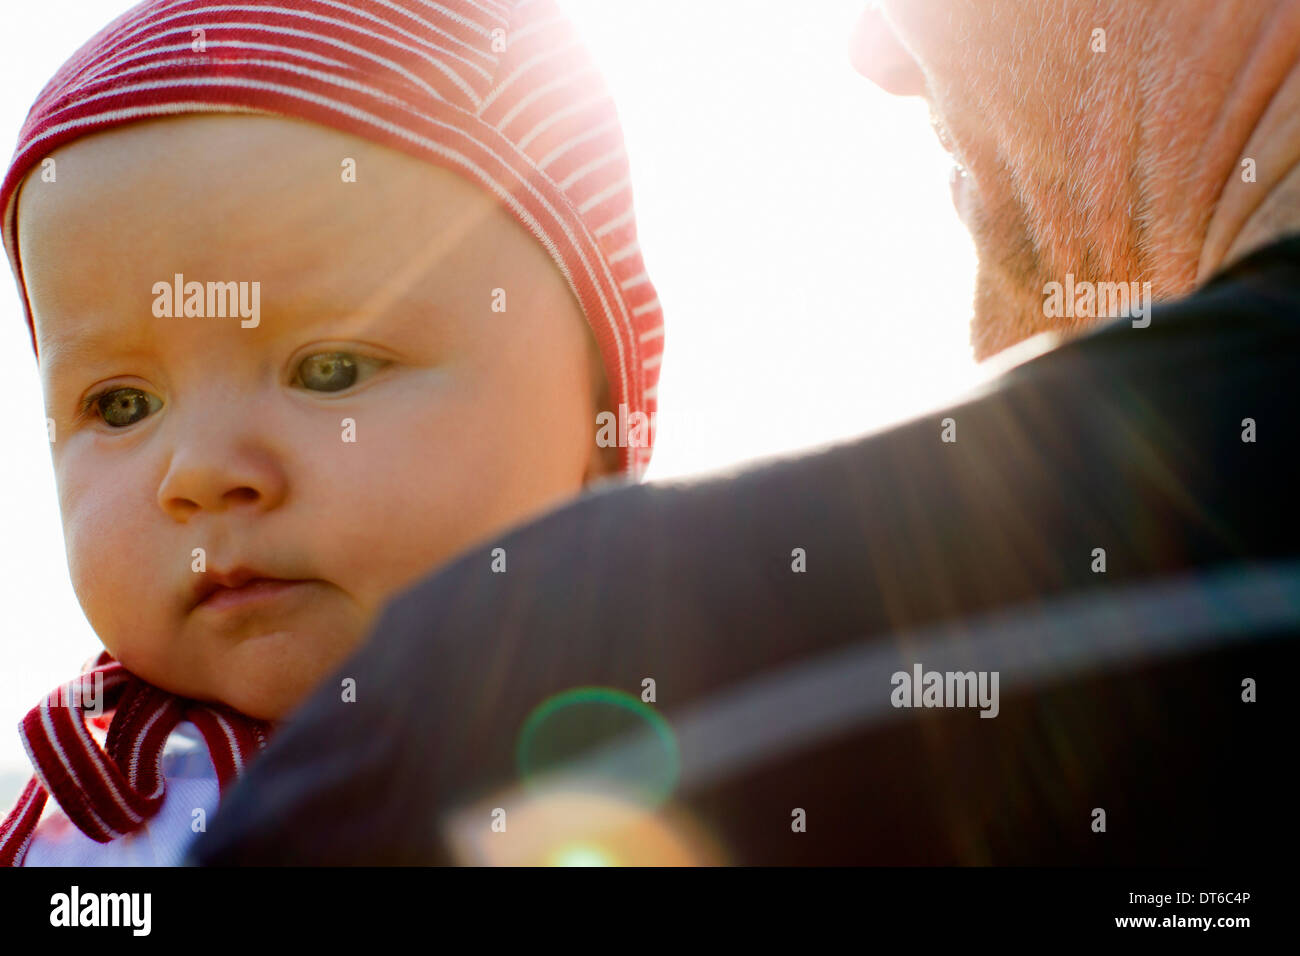 Father with baby daughter close-up - Stock Image